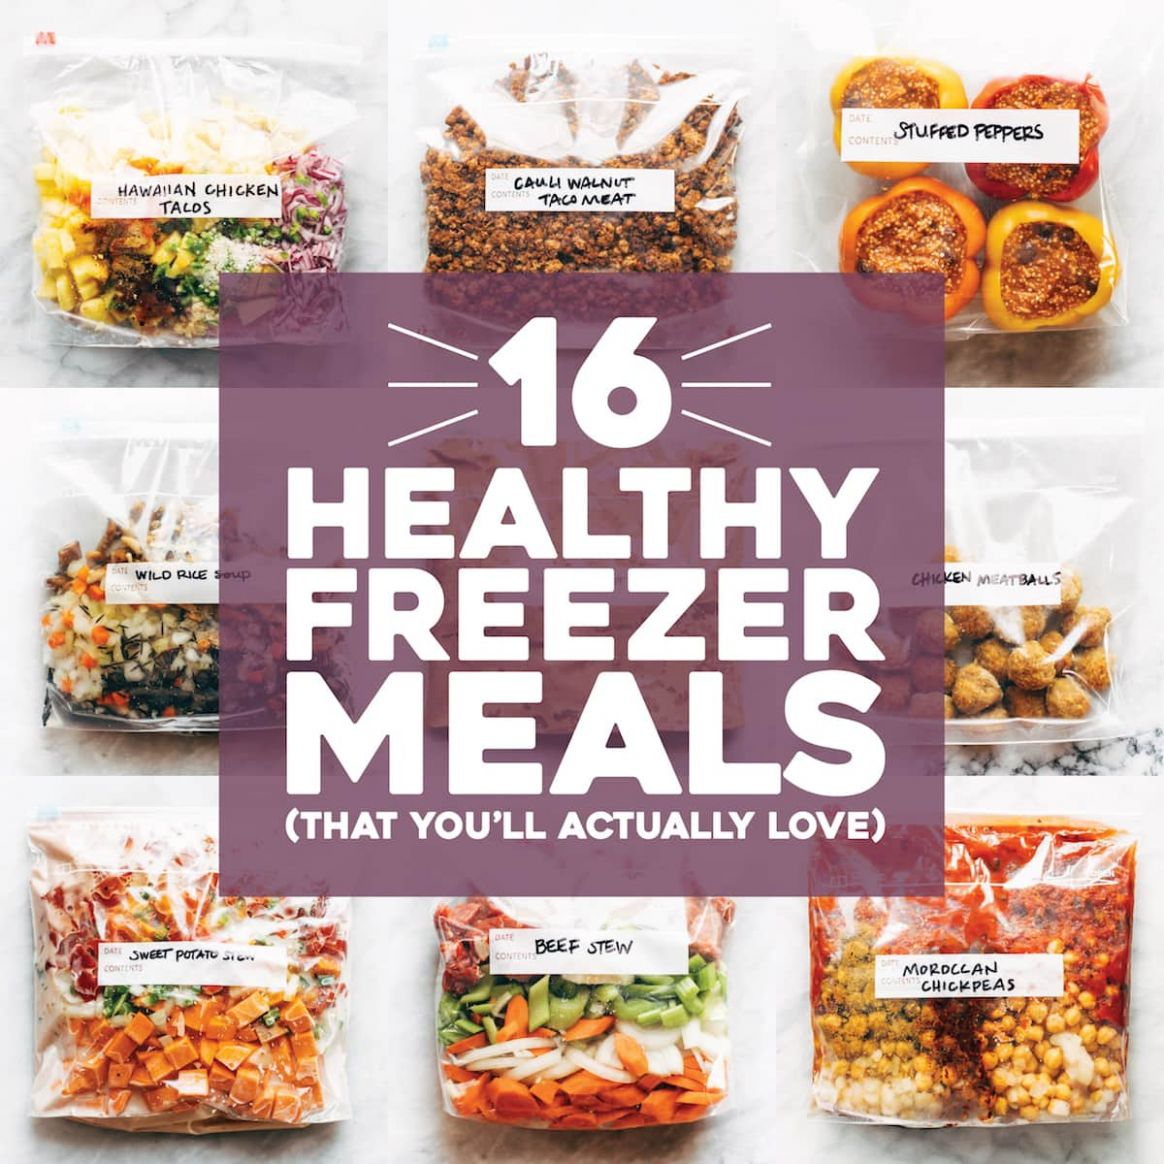 9 Healthy Freezer Meals (That You'll Actually Love) - Pinch of Yum